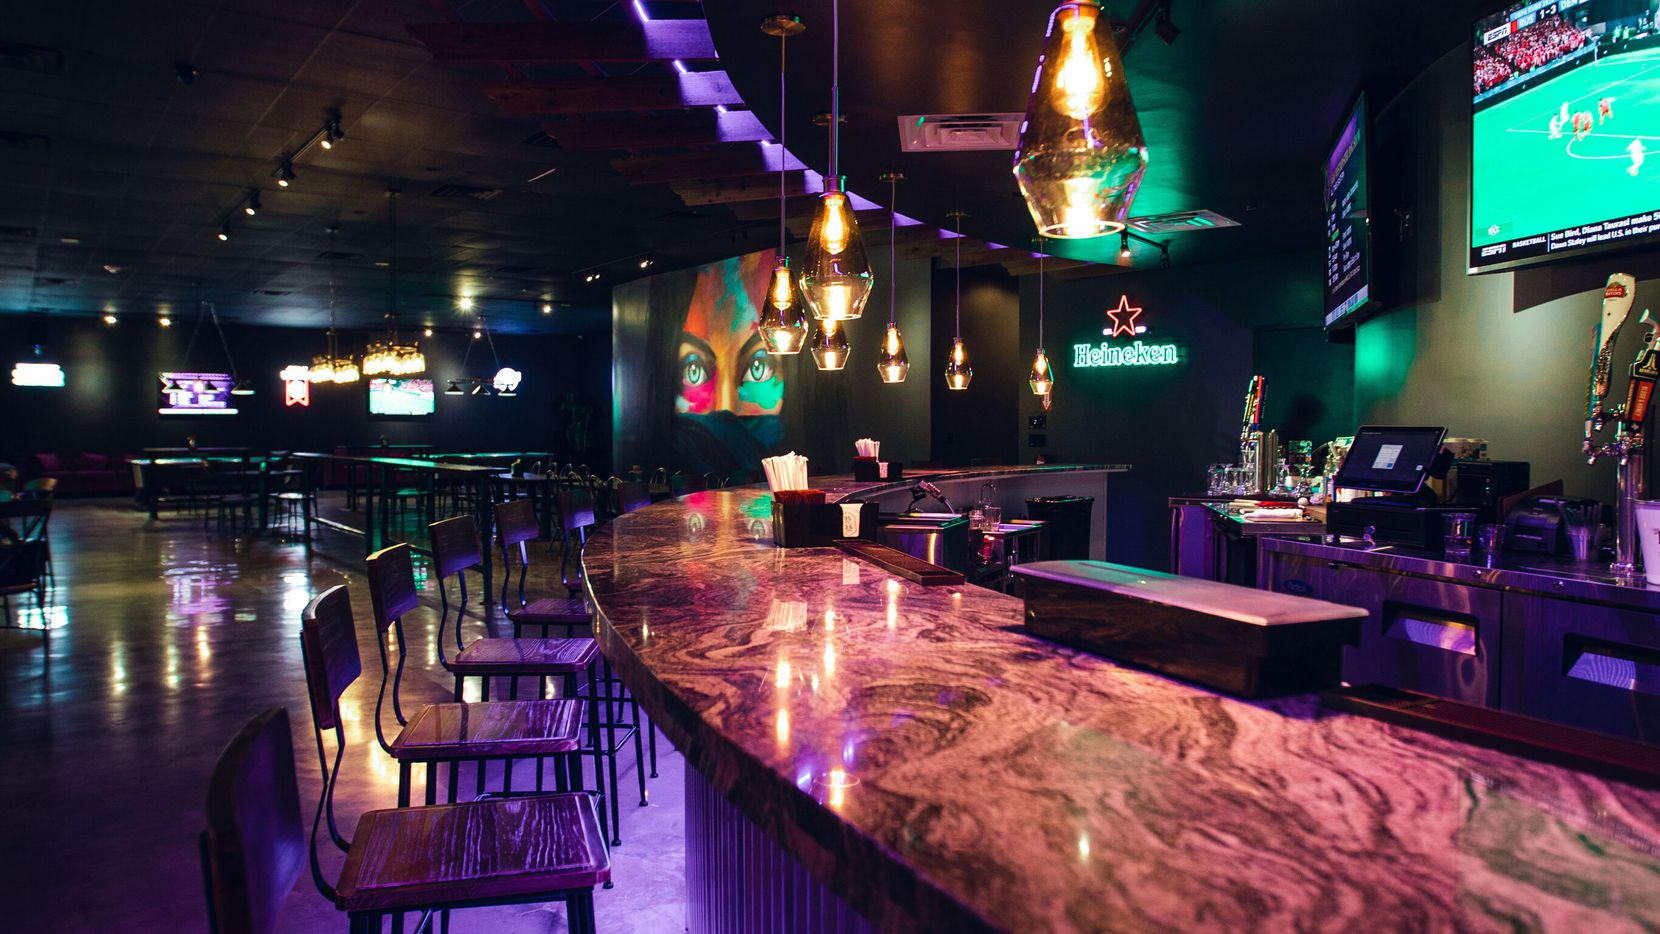 Hangout Restaurant and Sports Club serves a blend of American bar fare, Tex-Mex and Nepalese food.